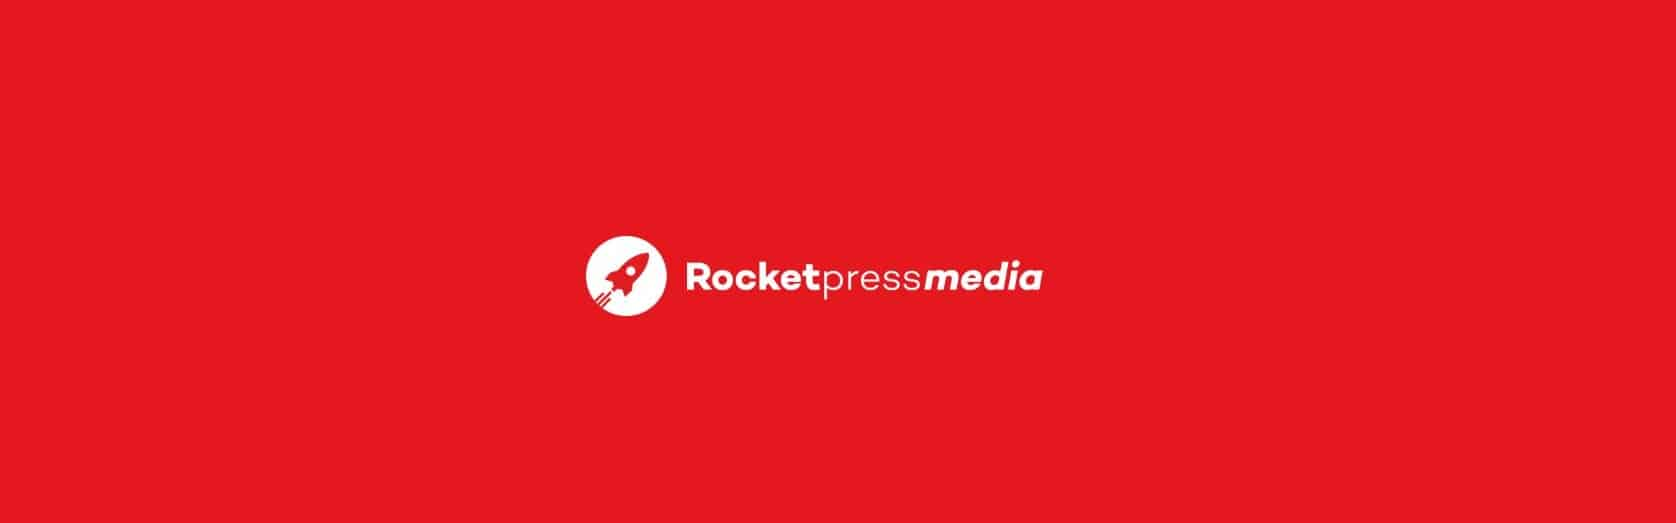 Rocket Press Media: Online Press Release Distribution